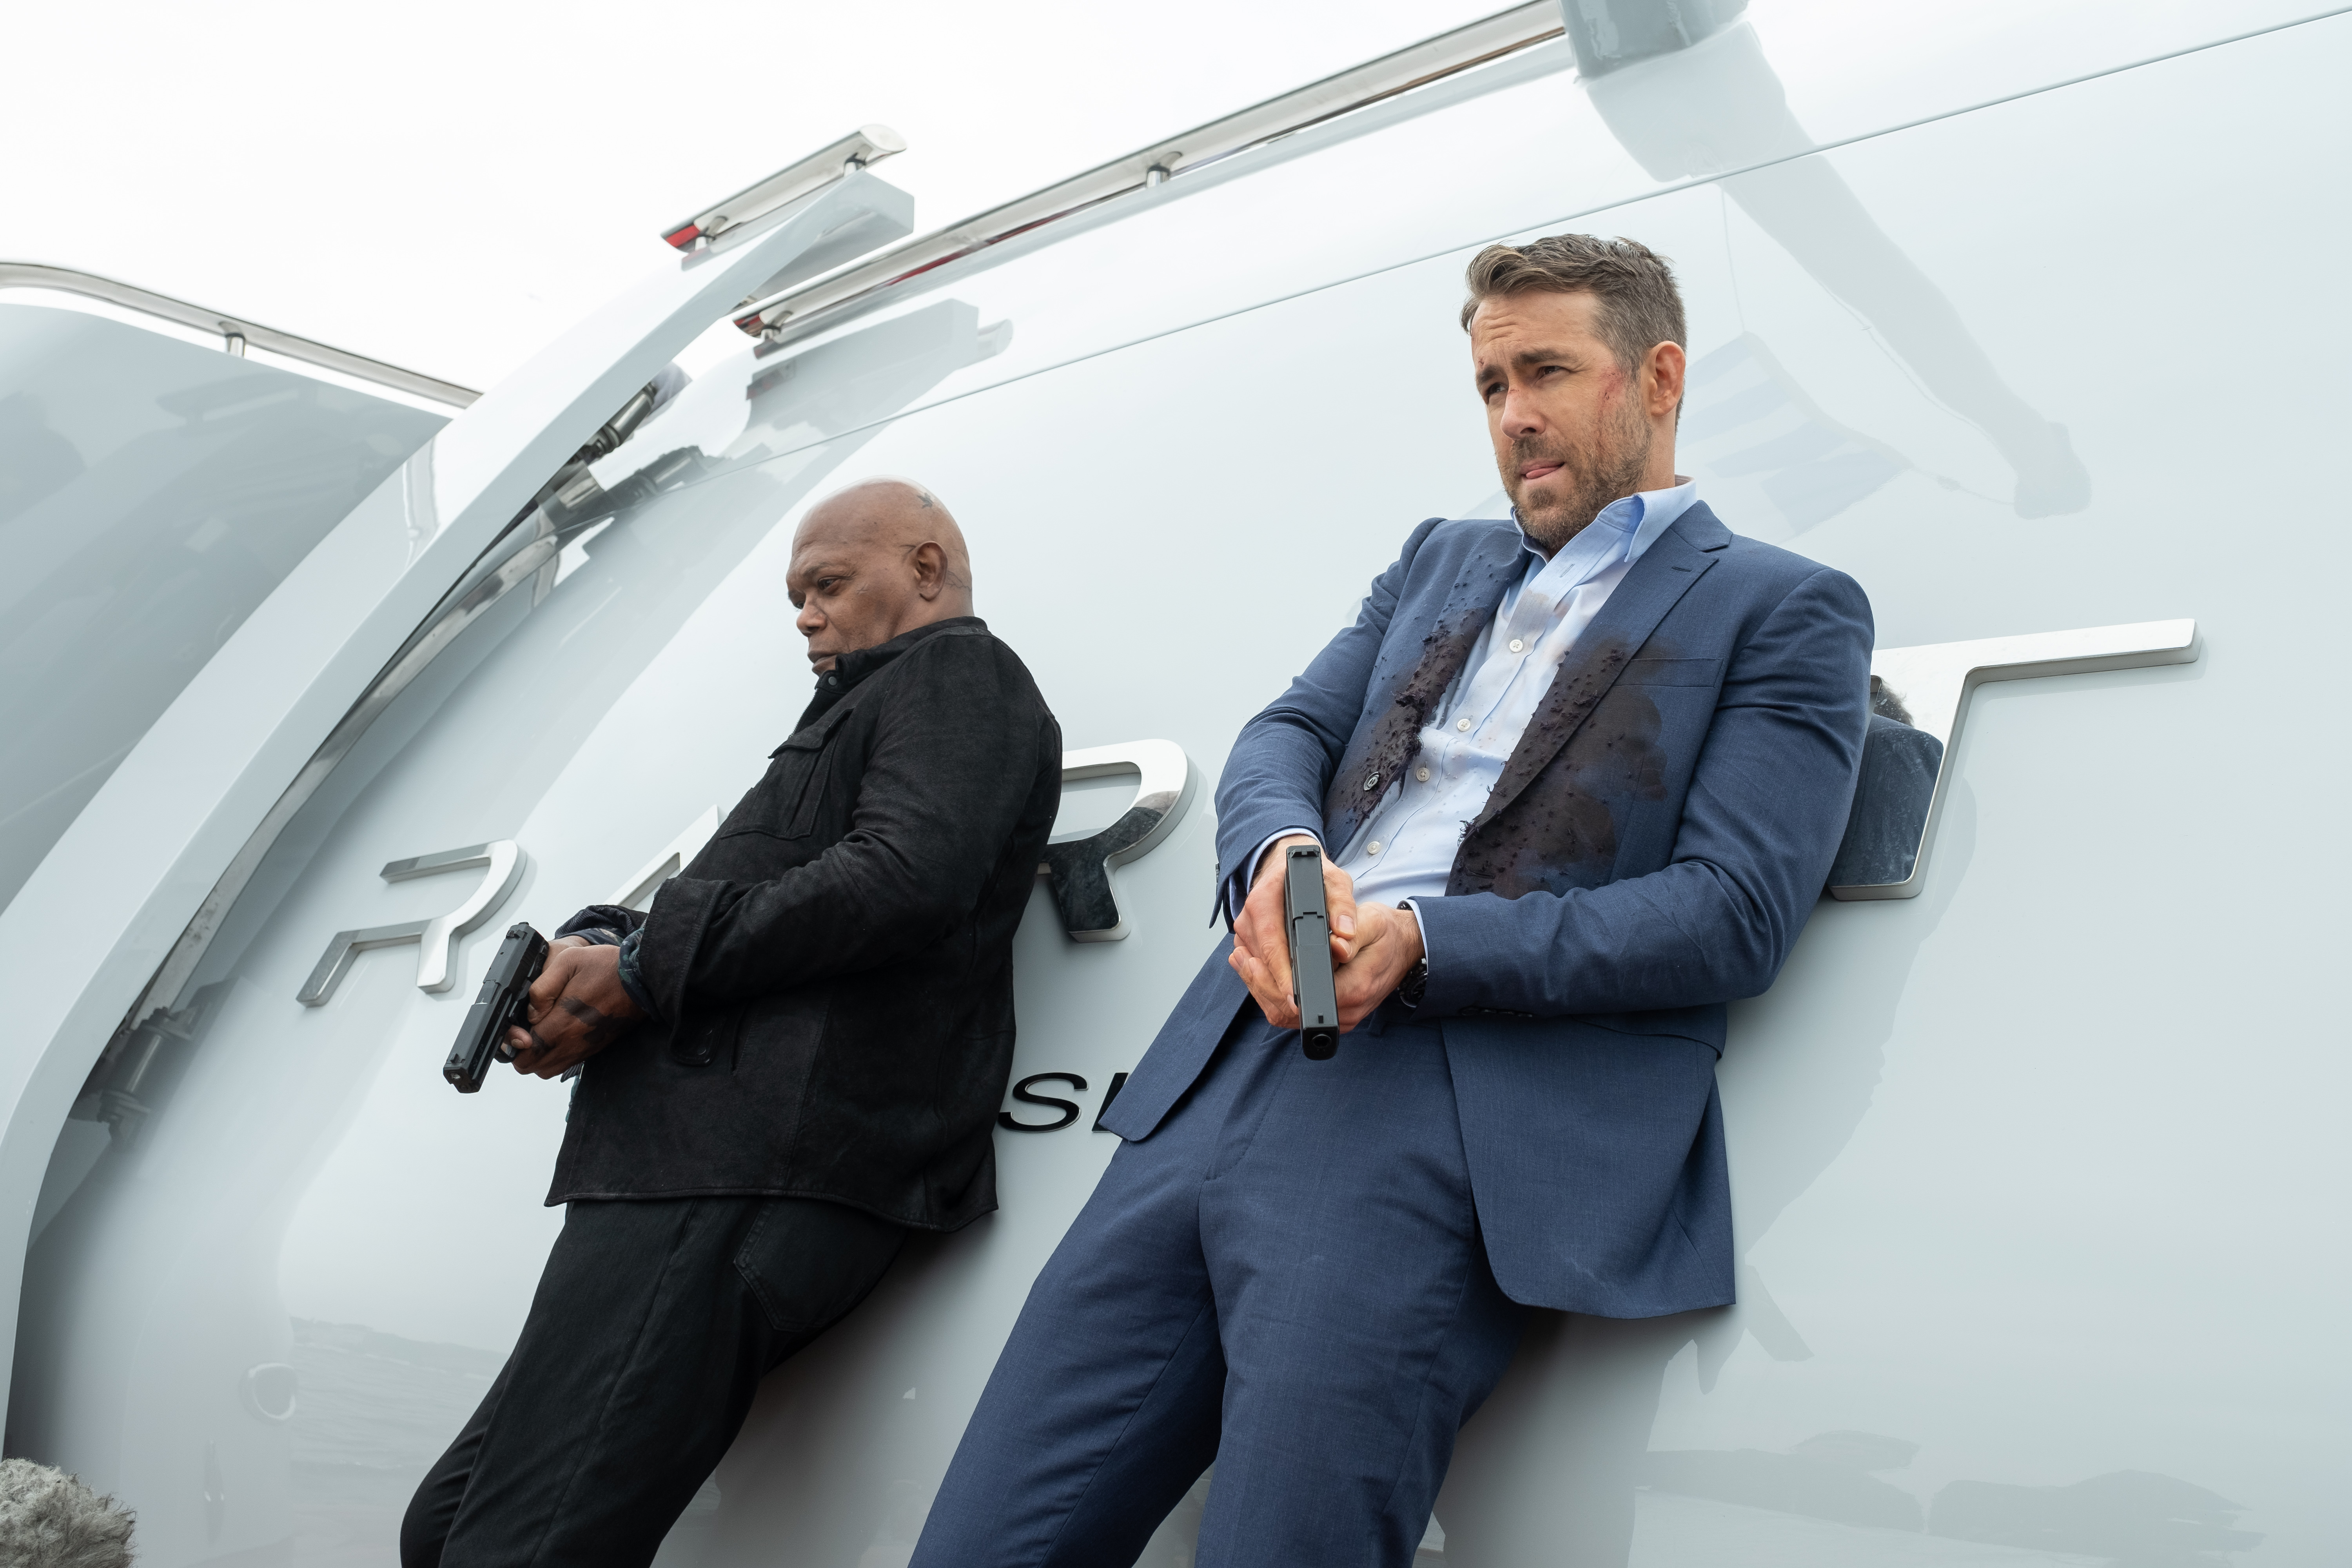 Film review of Killers Bodyguard 2: How much fun is the sequel to the surprise hit?